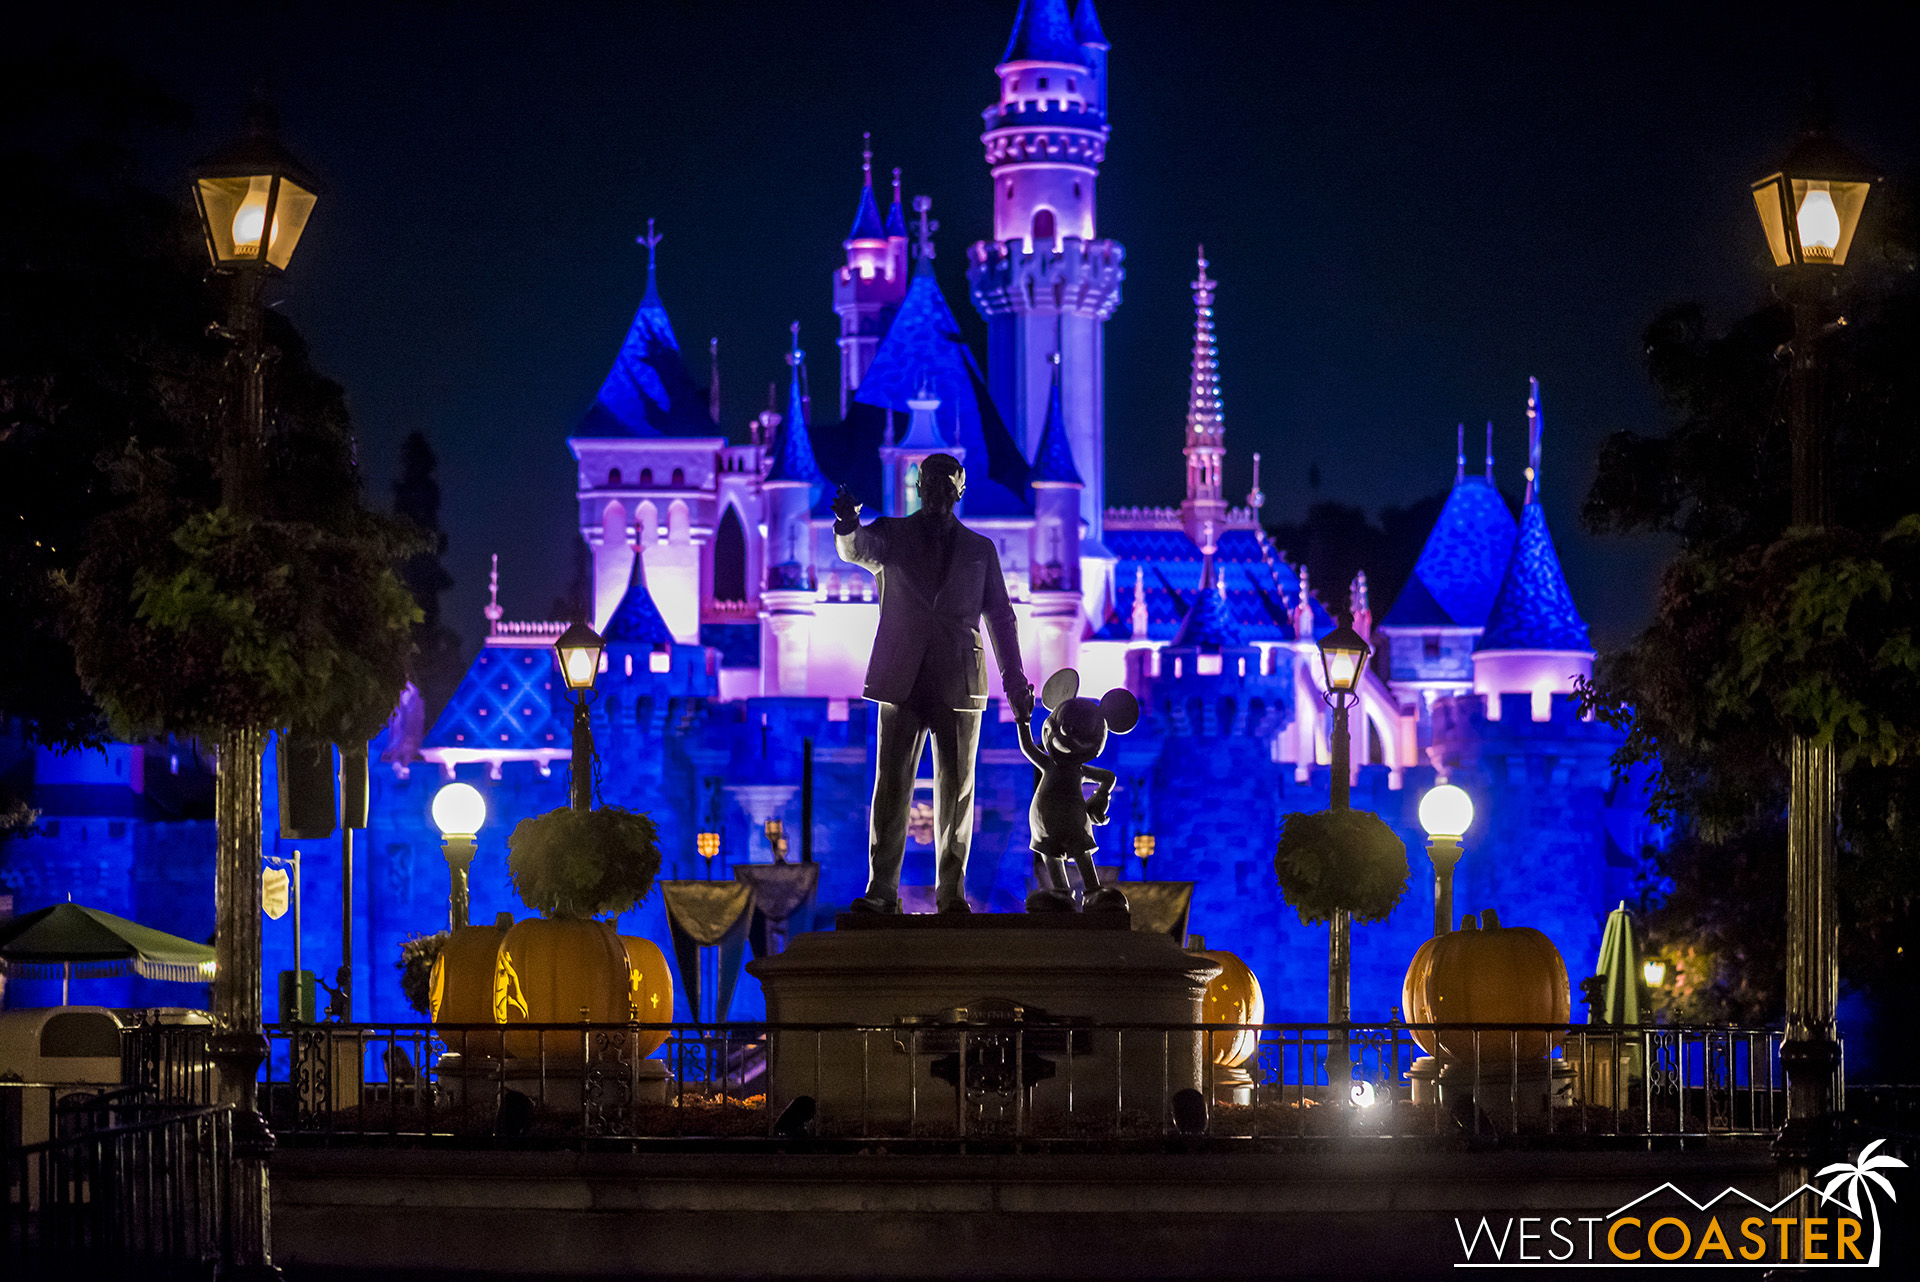 The lights were off the Partners Statue last Friday and before then, but there's something a bit col to see Walt and Mickey in silhouette, illuminated only by the glow of the backlighting.